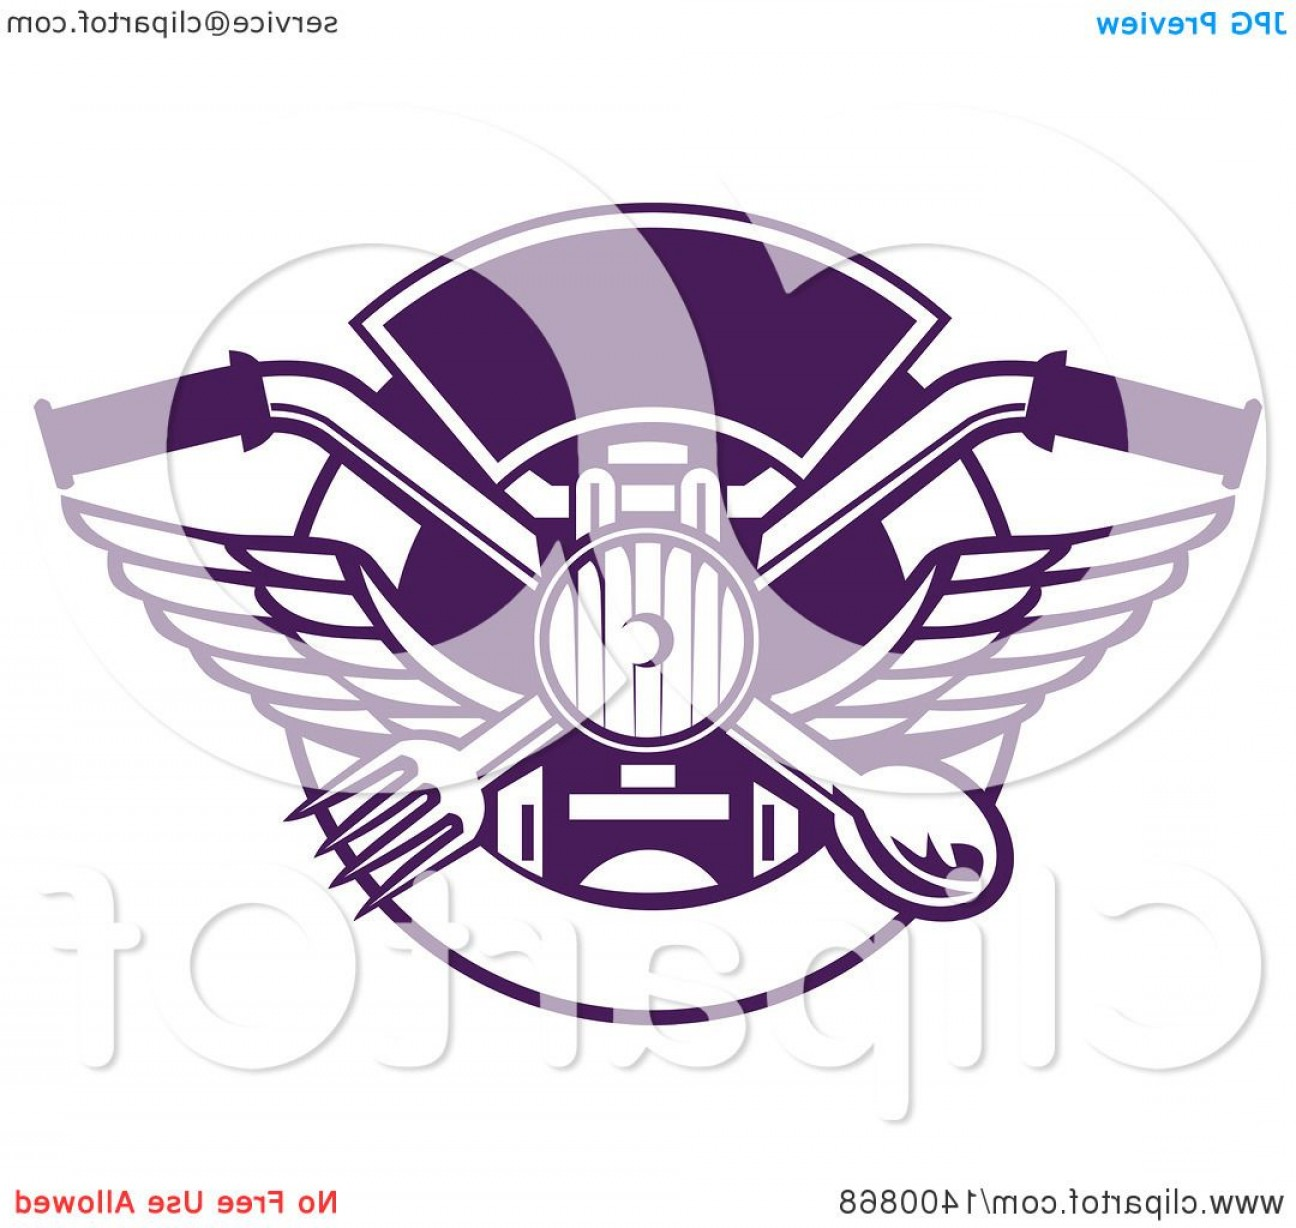 Headlight Vector Png: Trendy Retro Crossed Spoon And Fork Over Motorcycle Handlebars And Headlamp In A Purple And White Plate Circle